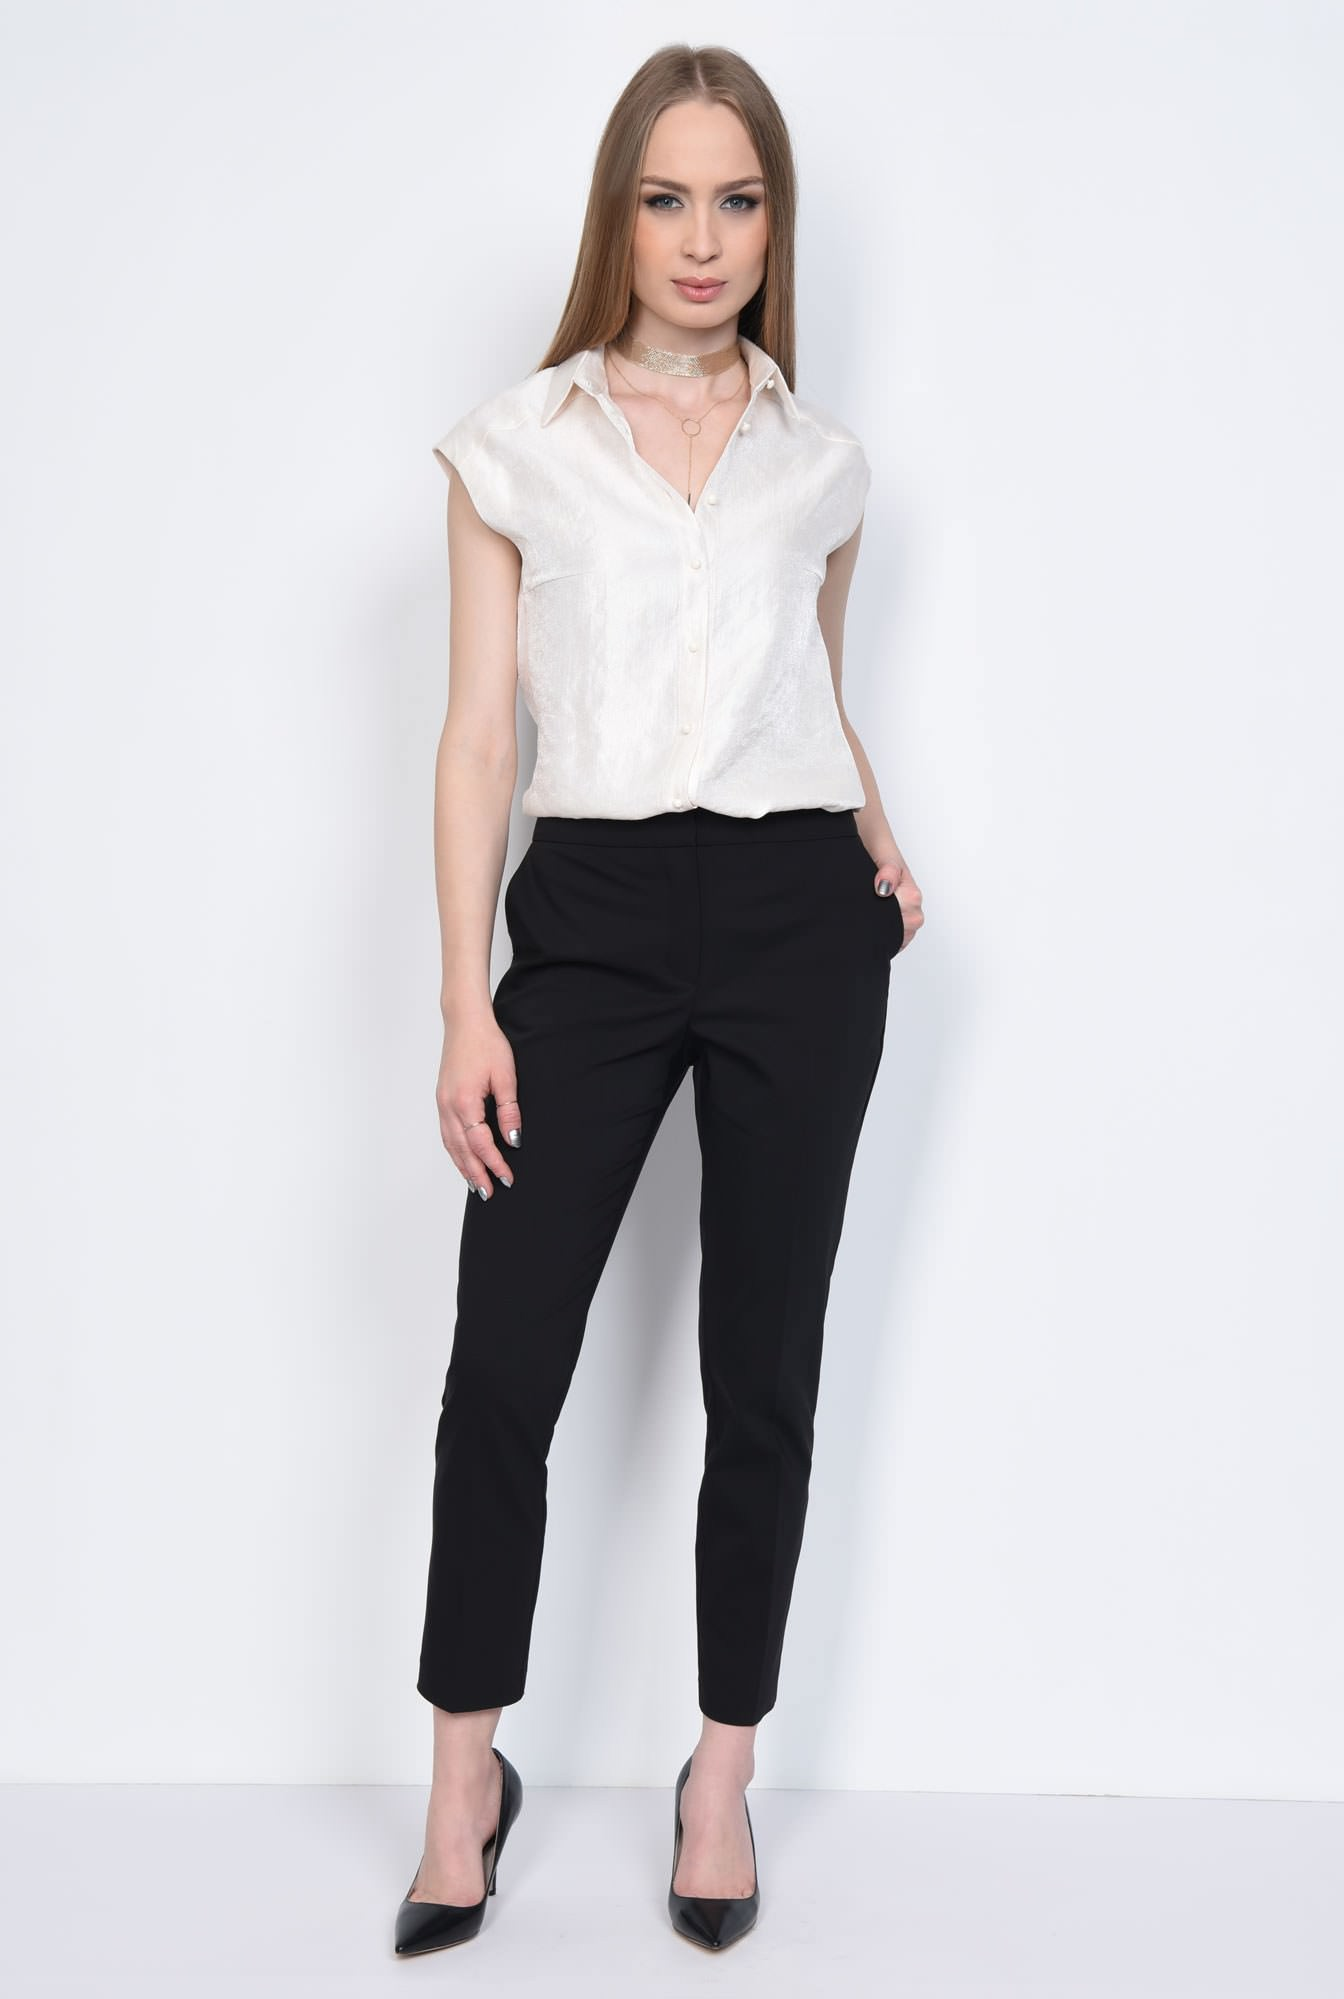 3 - PANTALON OFFICE CONIC PT 144-NEGRU